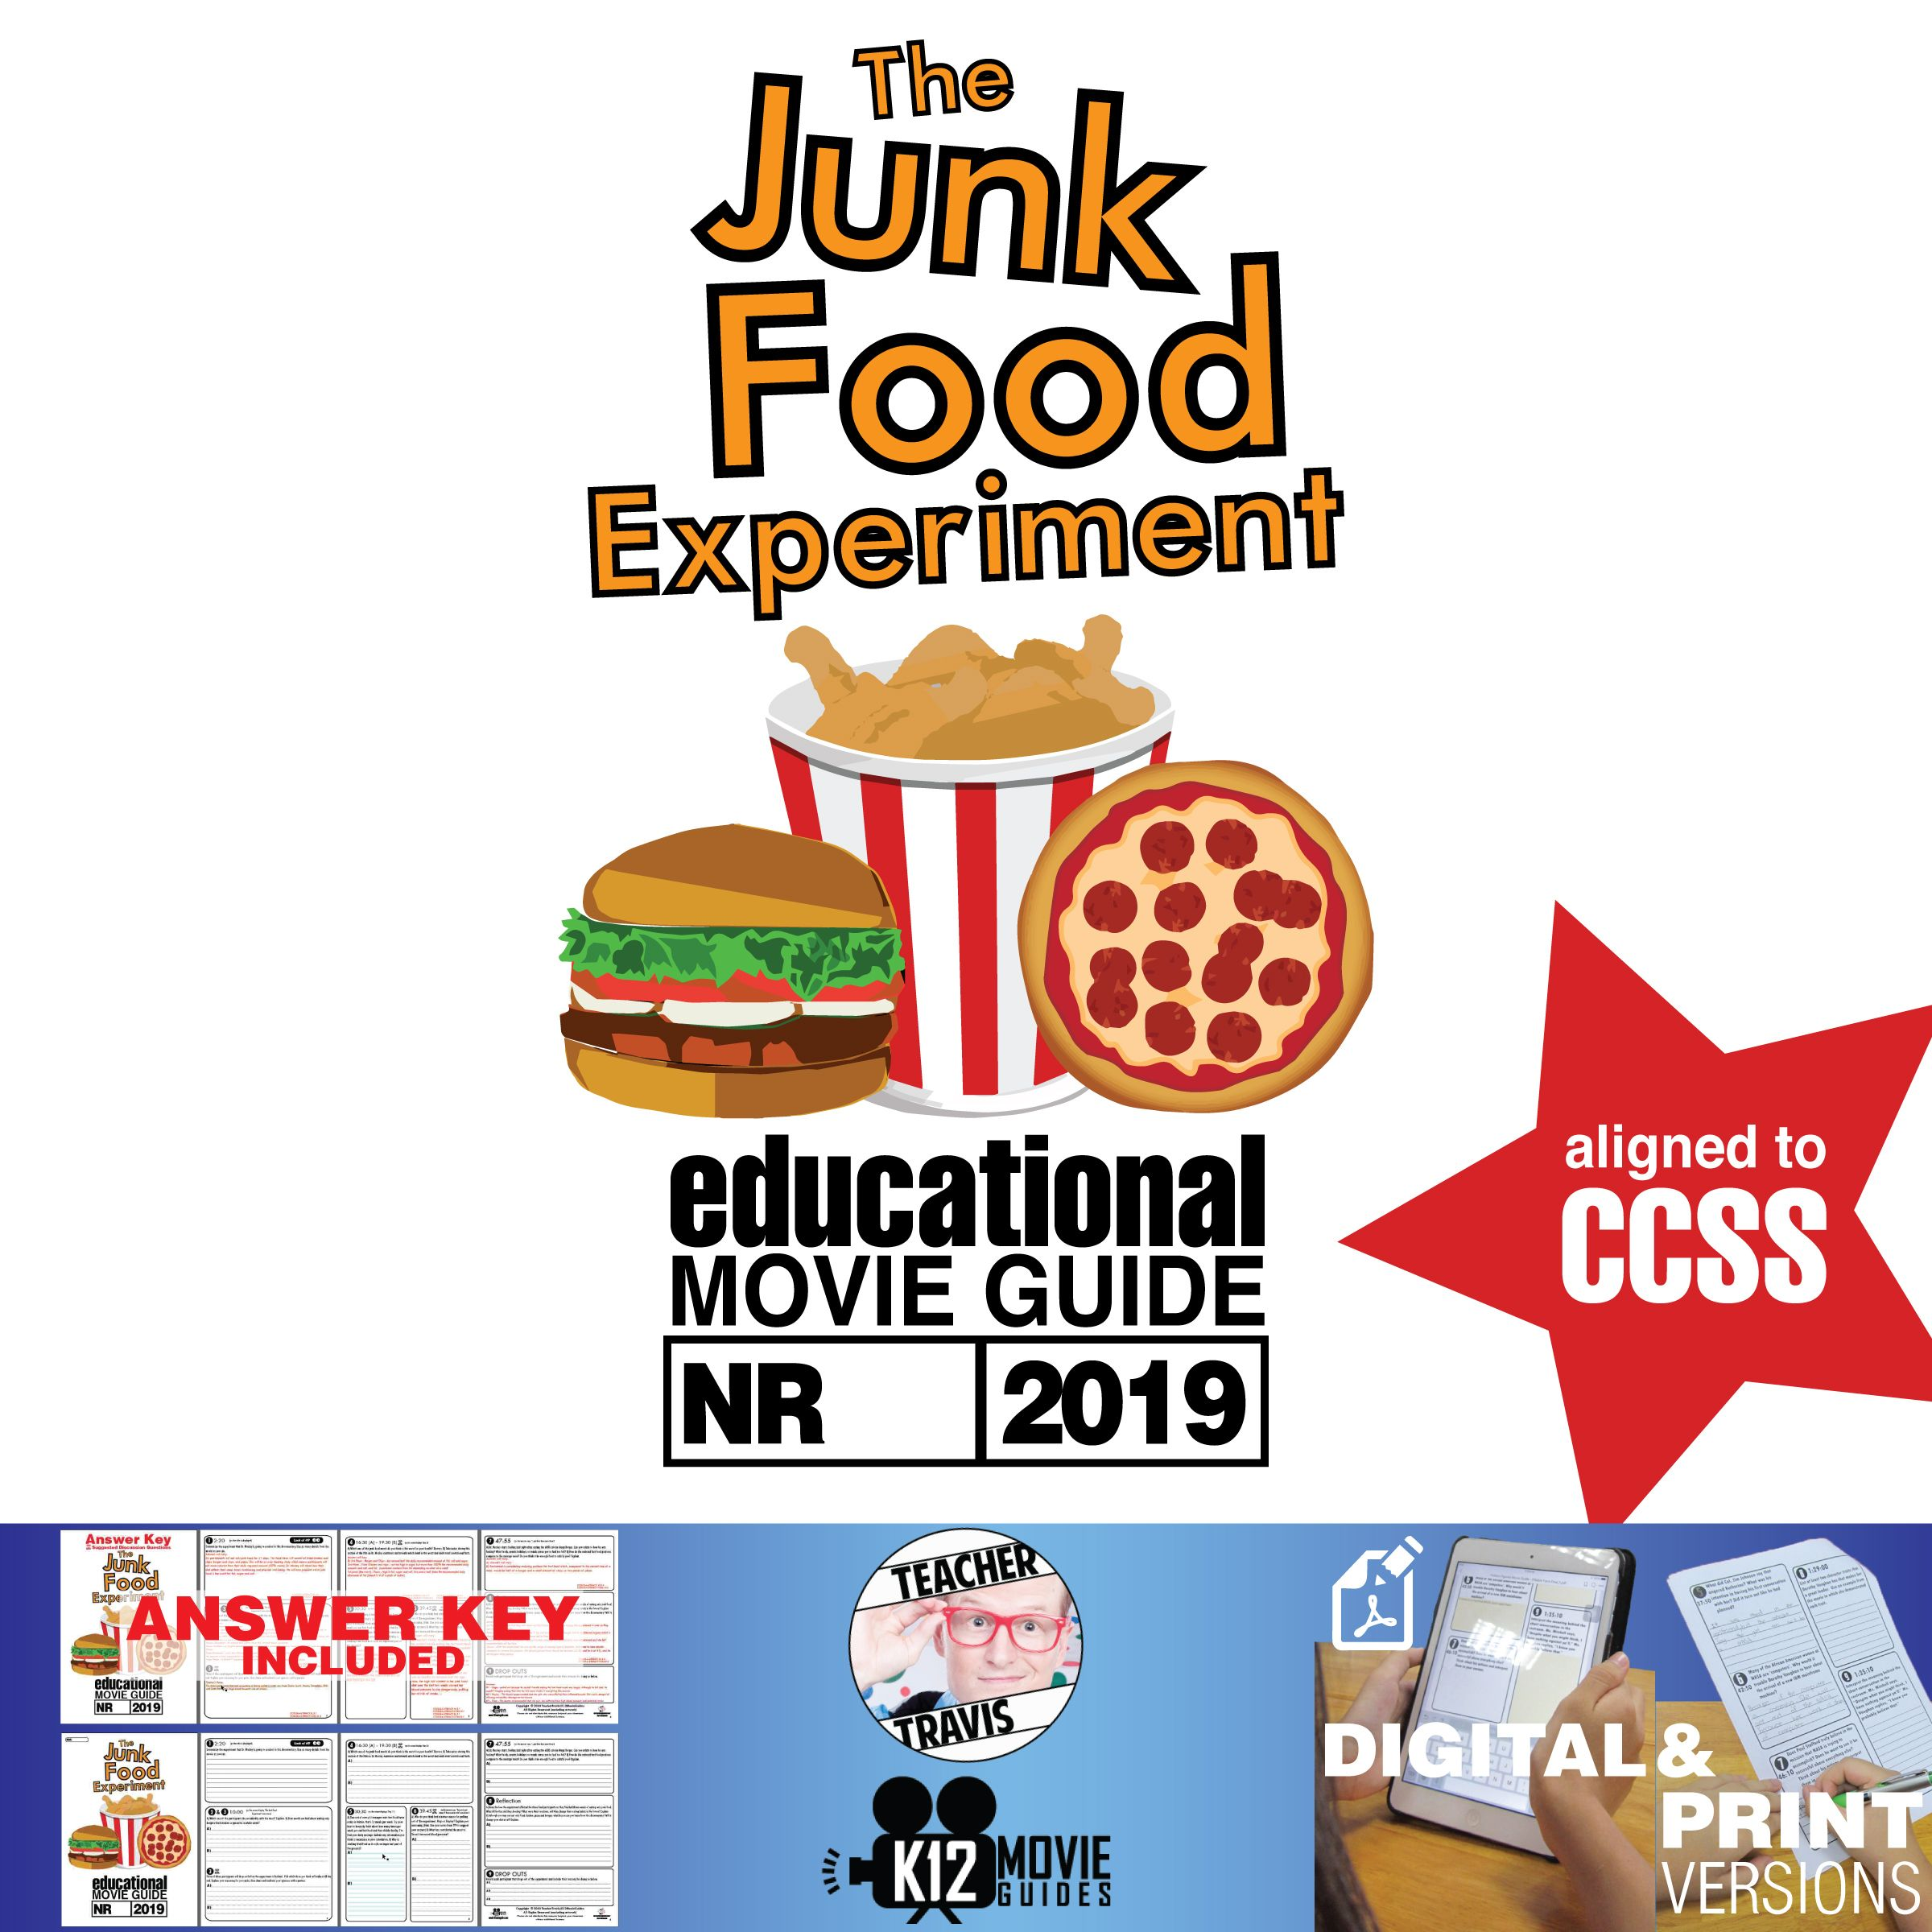 The Junk Food Experiment Documentary Movie Guide